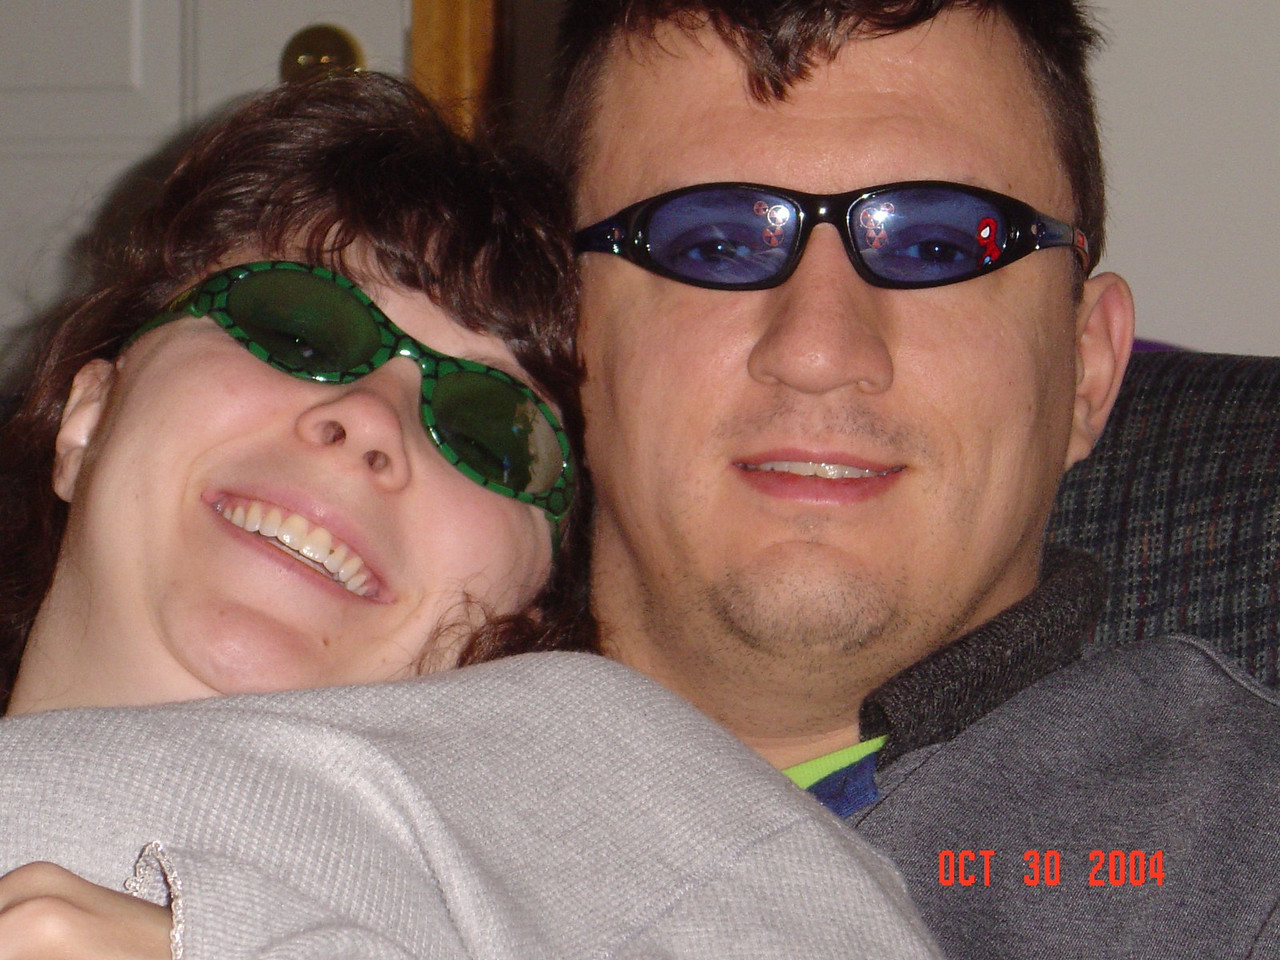 Mom_and_Dad_in_Ty's_cool_shades_chillin_out